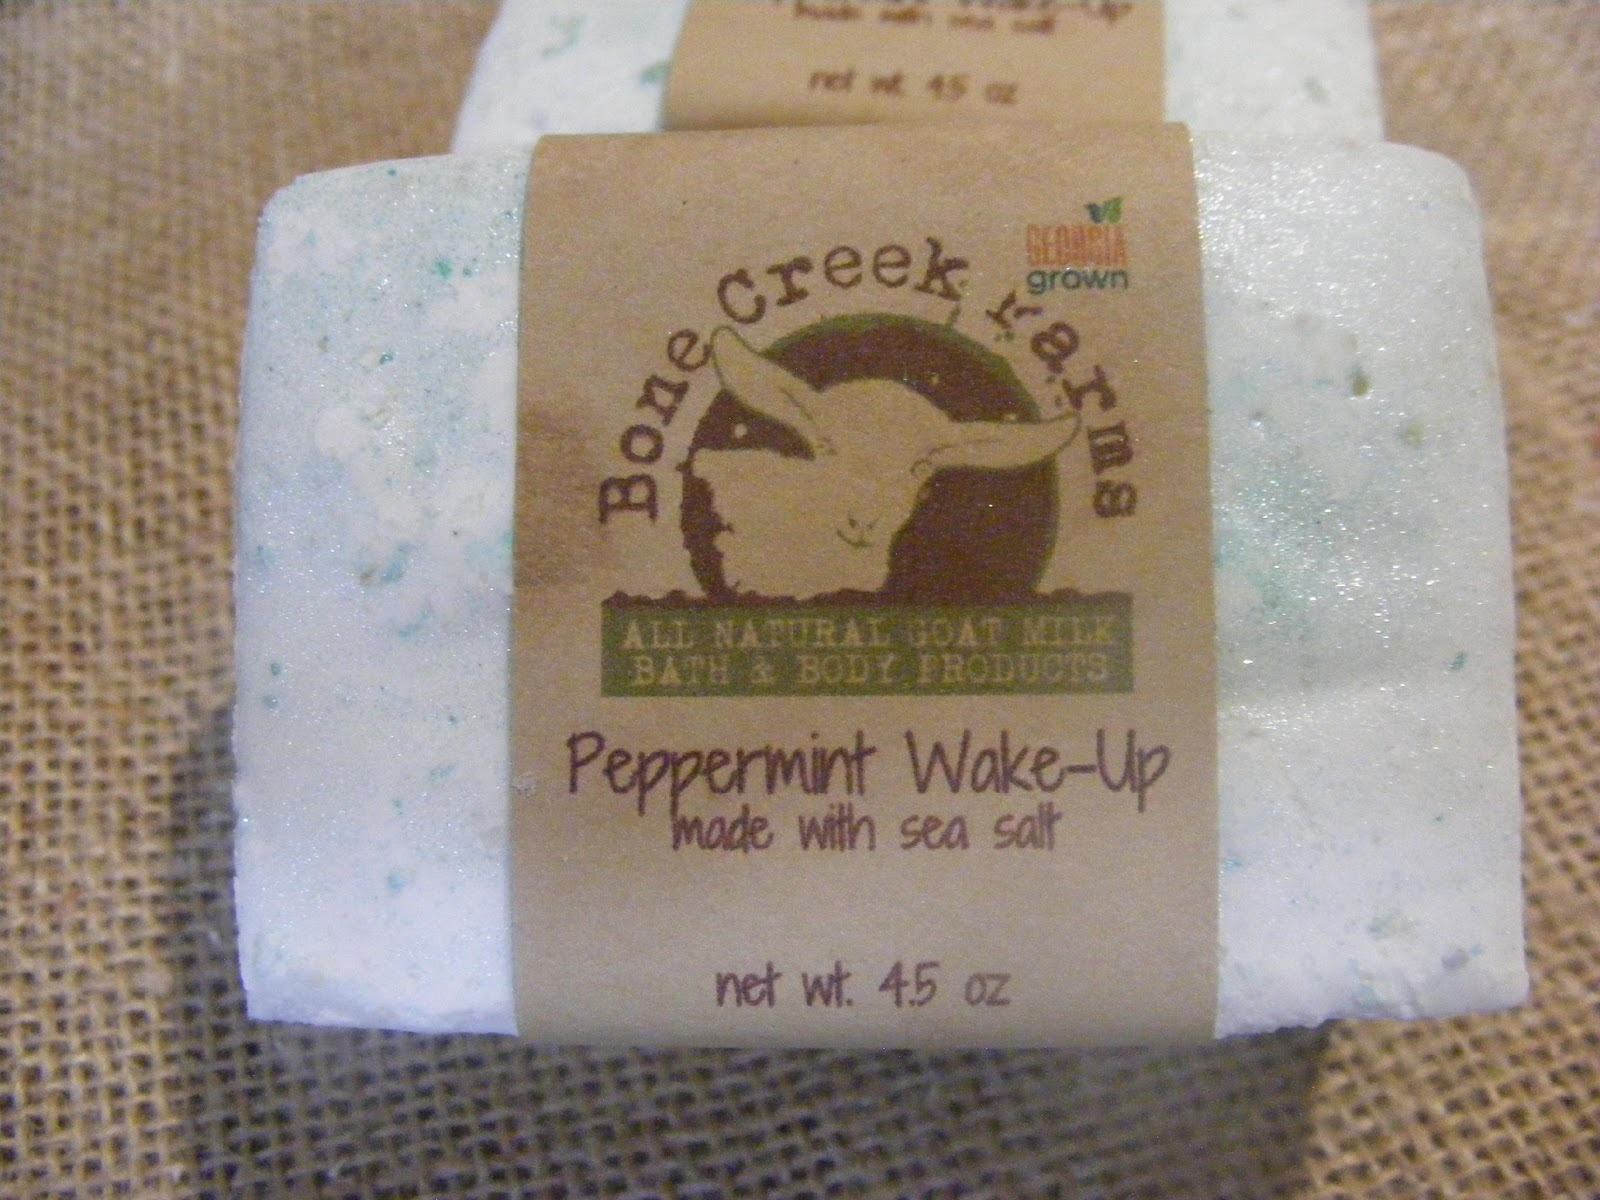 Peppermint Wake-Up